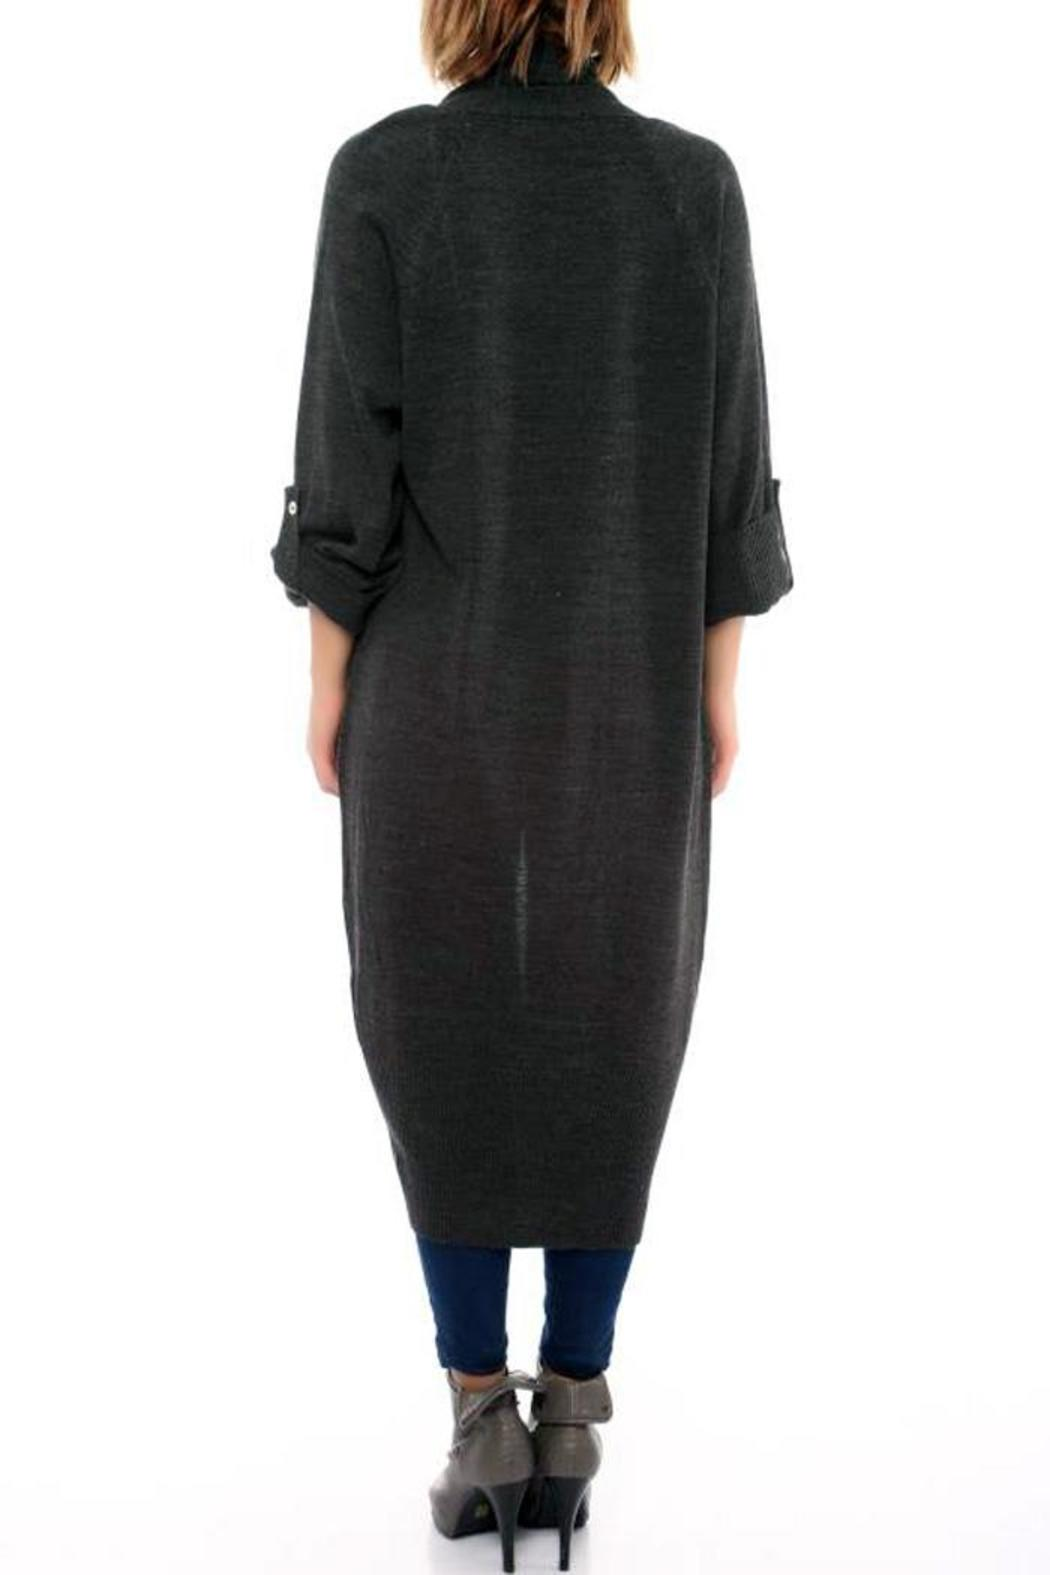 abebae985f L adore Long Open Front Cardigan from San Francisco by Marvy Fashion ...